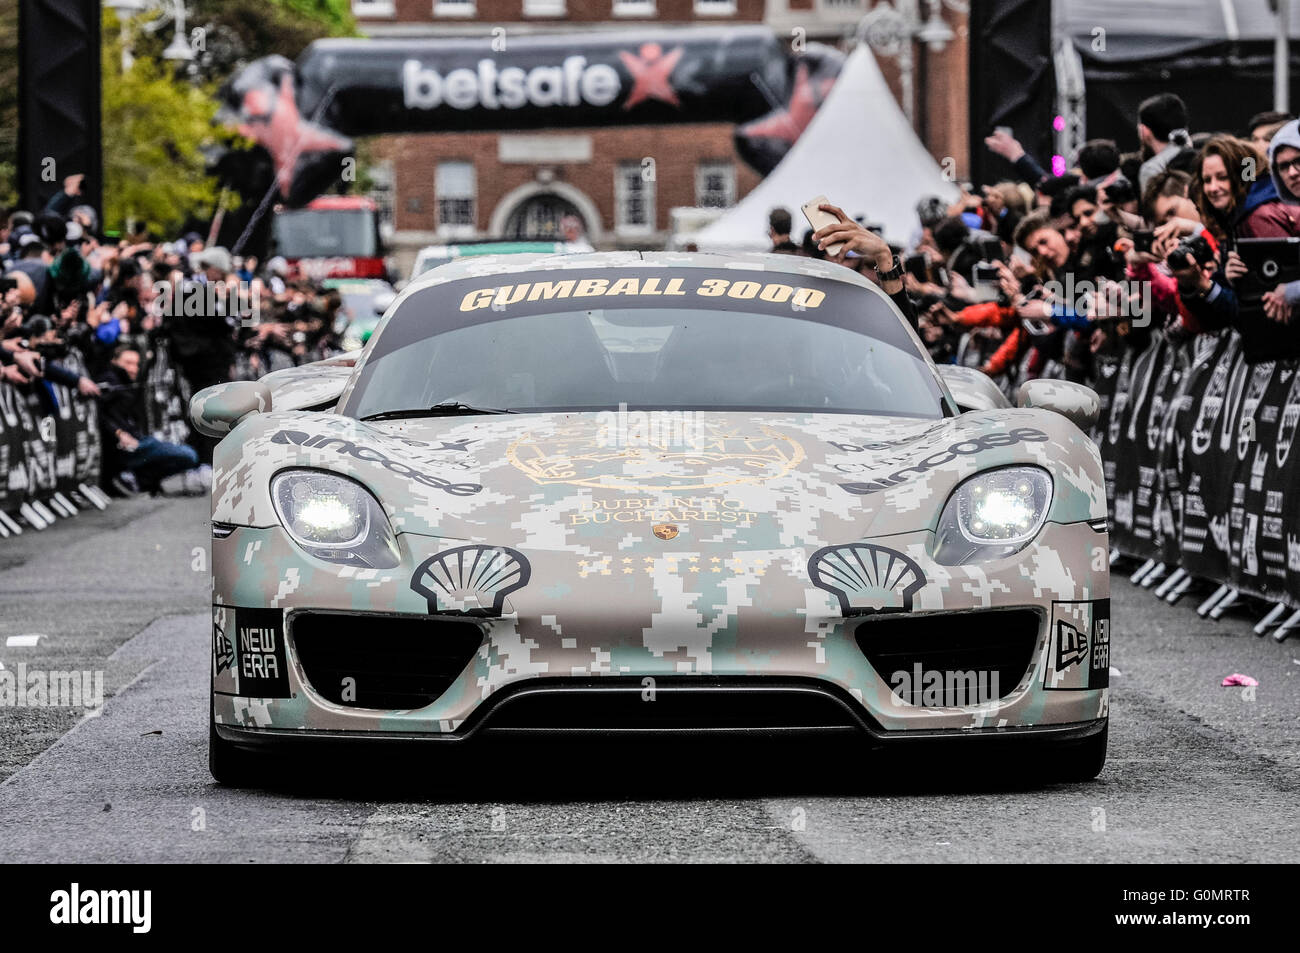 Porsche 918 Spyder plug-in hybrid hypercar with camouflage vinyl wrap at the starting line of the Gumball 3000 from - Stock Image